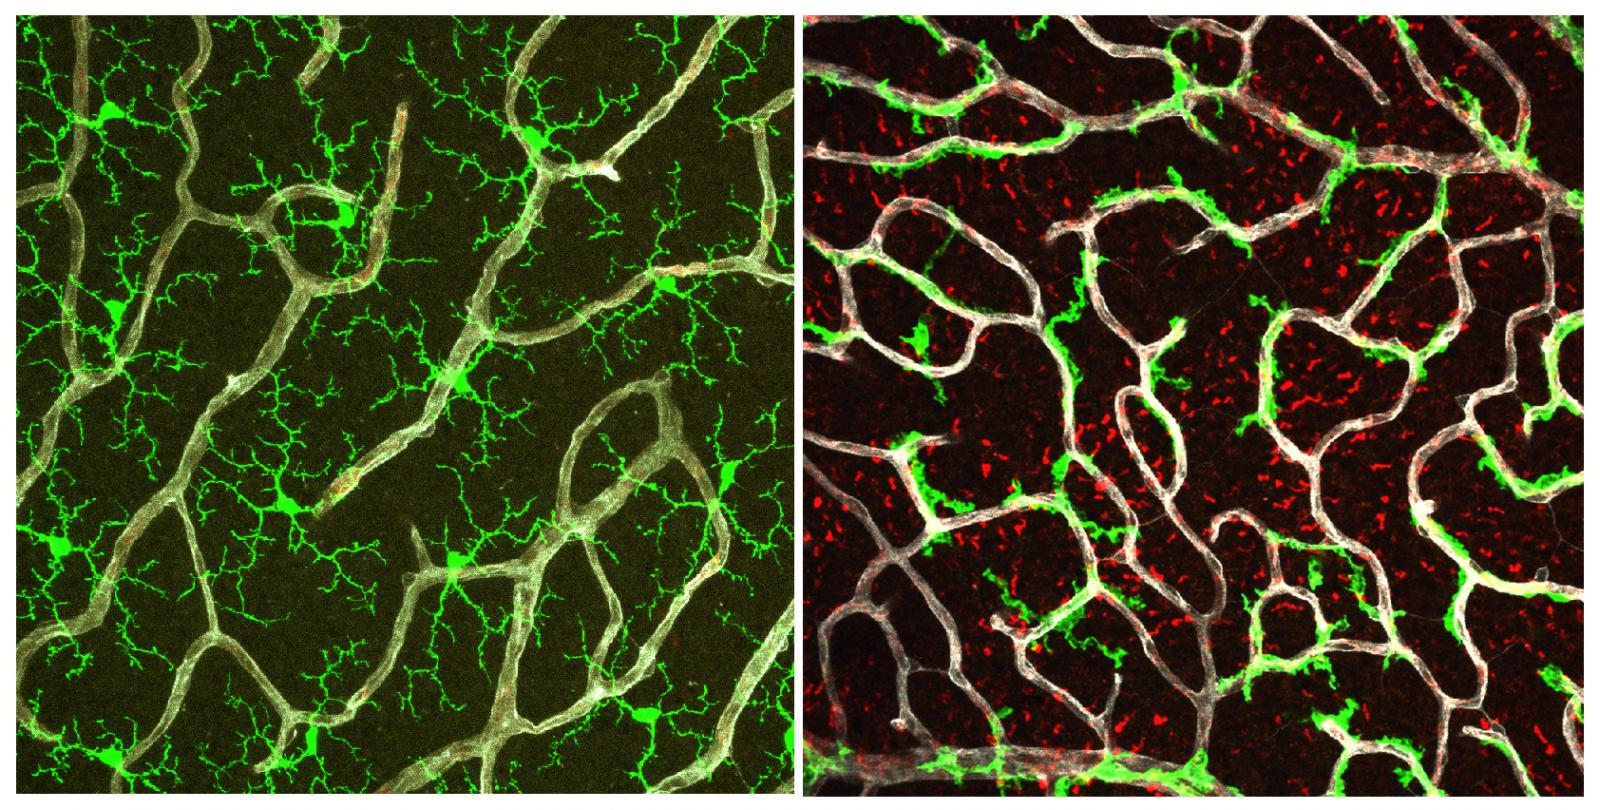 Split panel showing microglia and blood vessels in healthy retina or in retina without TGFβ signaling.